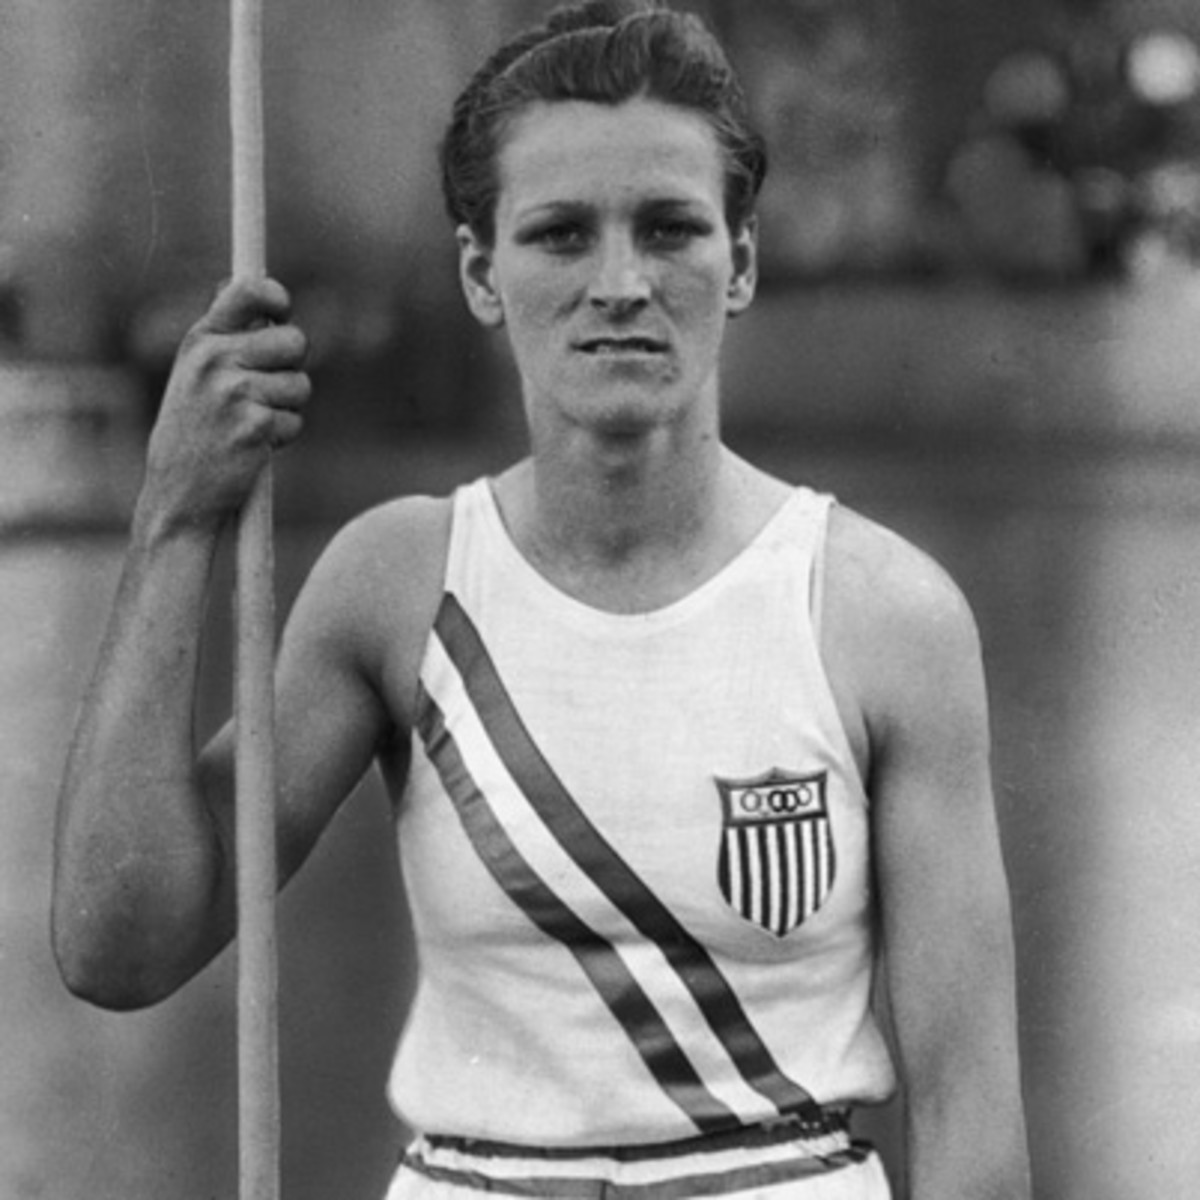 Babe Didrikson Zaharias - Athlete, Track and Field Athlete, Golfer -  Biography